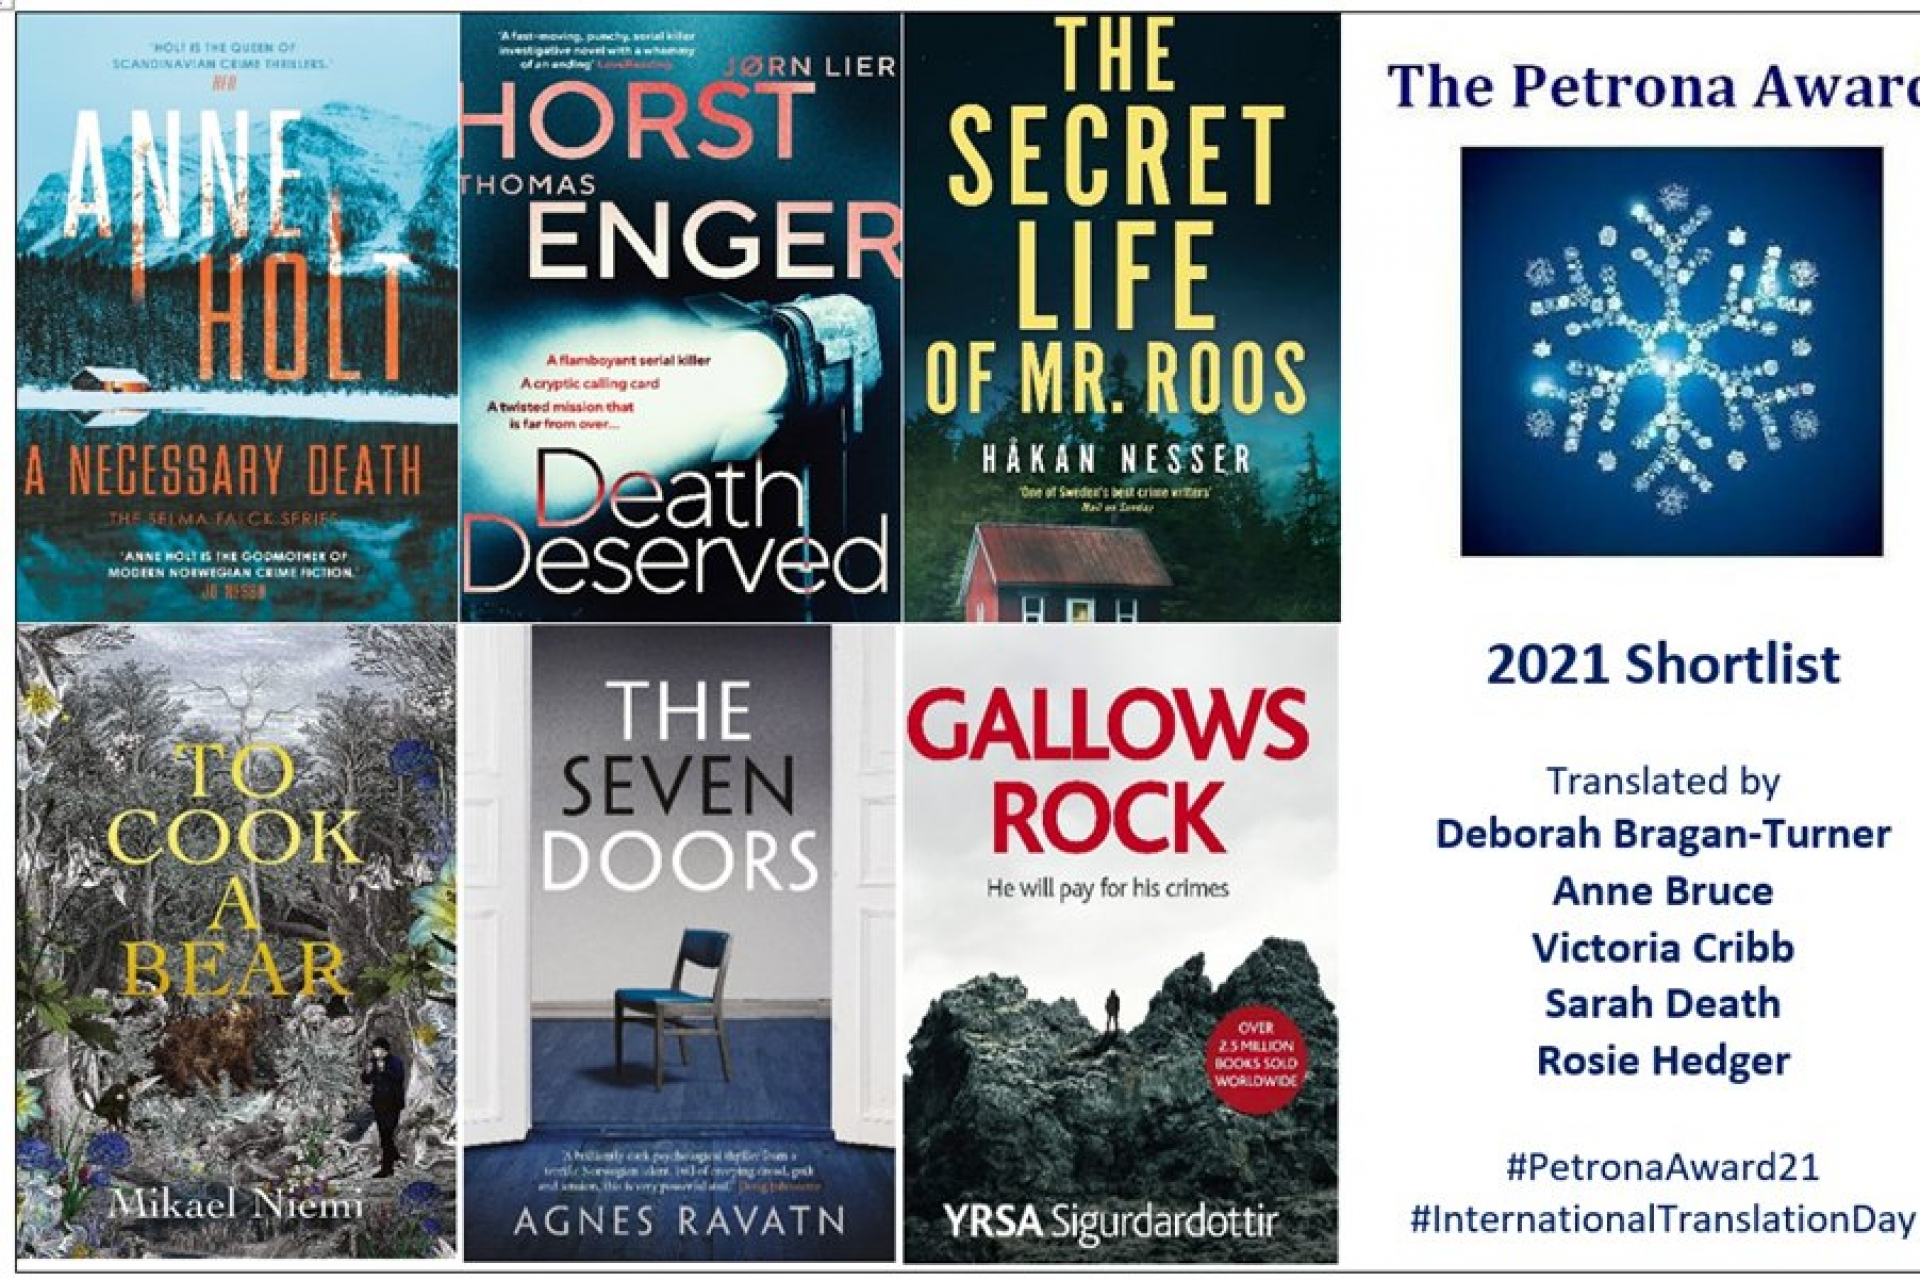 Outstanding crime fiction from Iceland, Norway and Sweden shortlisted for the 2021 Petrona Award